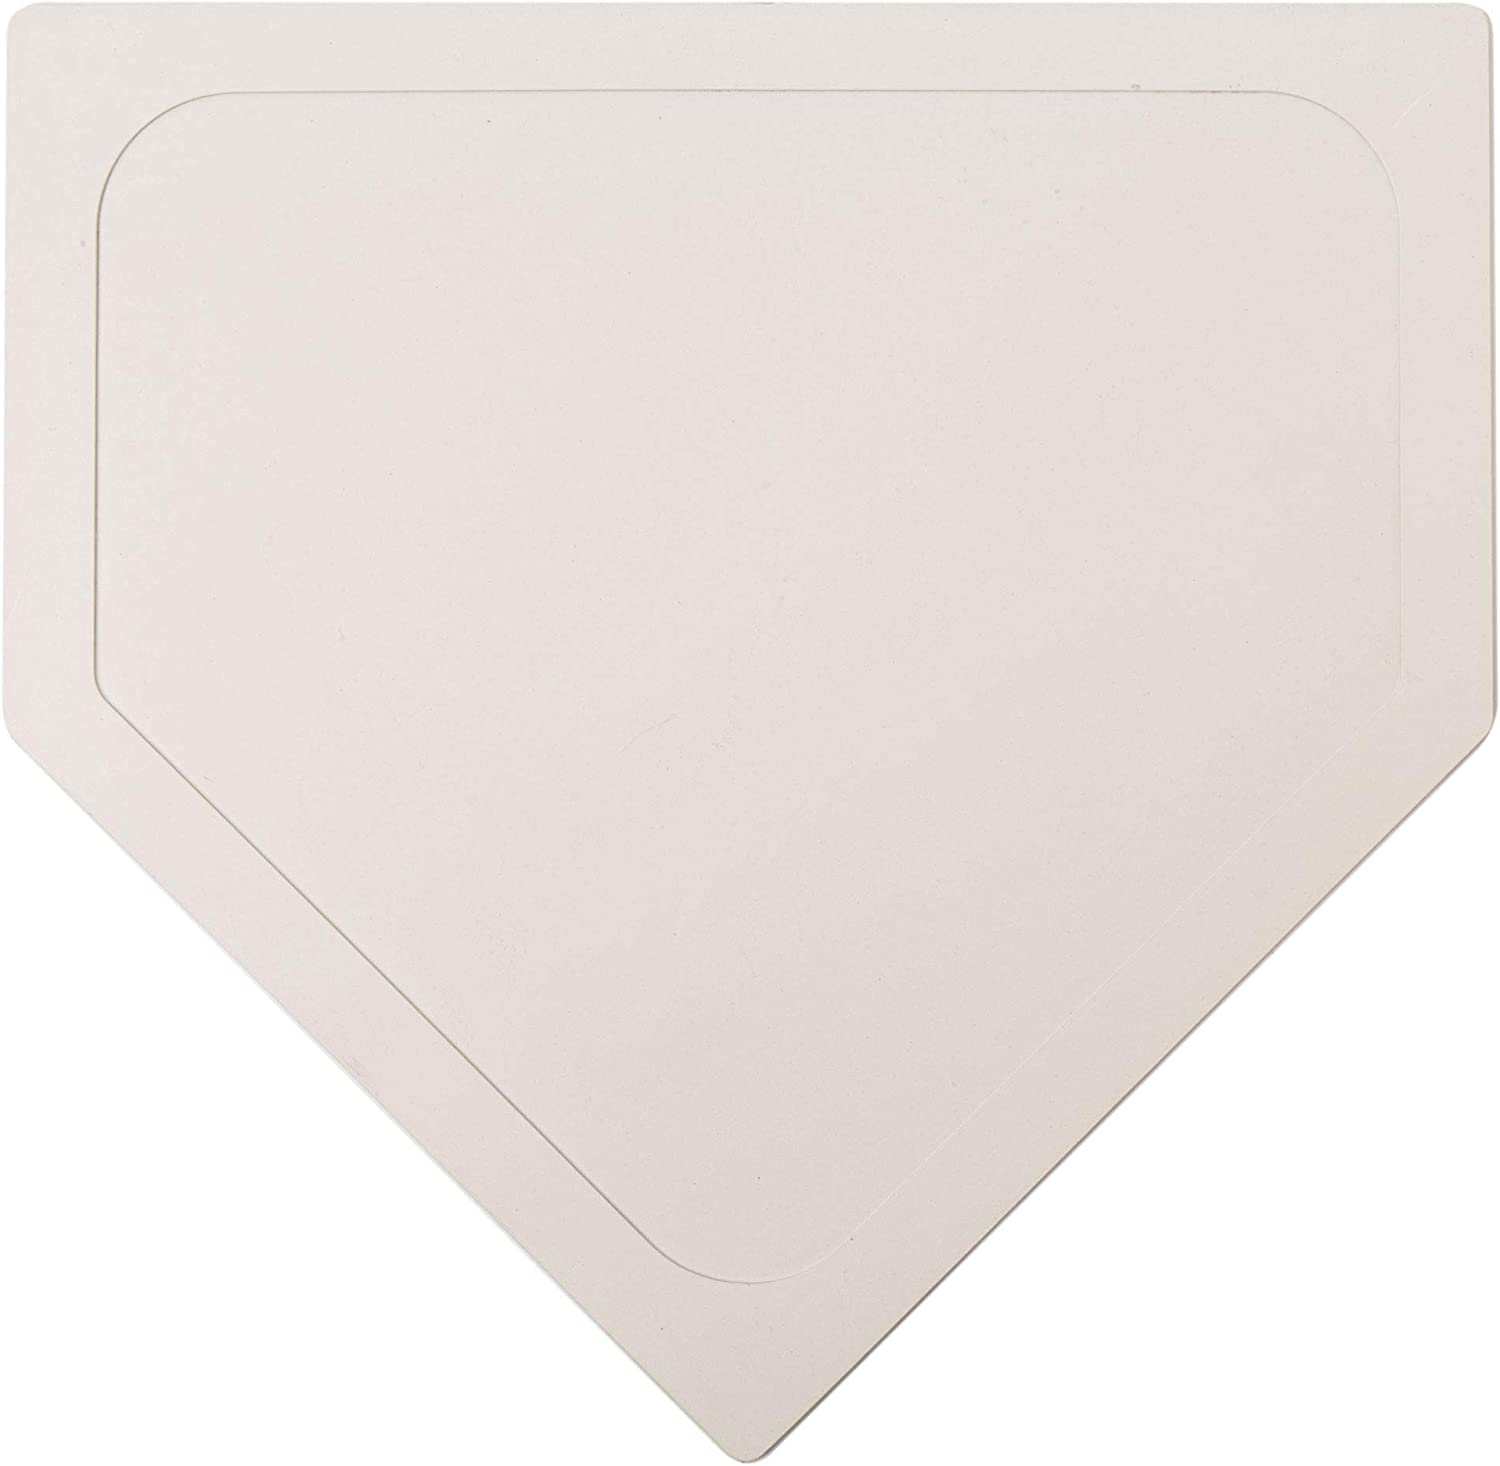 Throw Down Home Plate - Single Base for Little League, Babe Ruth Baseball and Kickball, Stickball - Great for Coaches, Gym Teachers, and Skill Camp Instructors - Physical Education